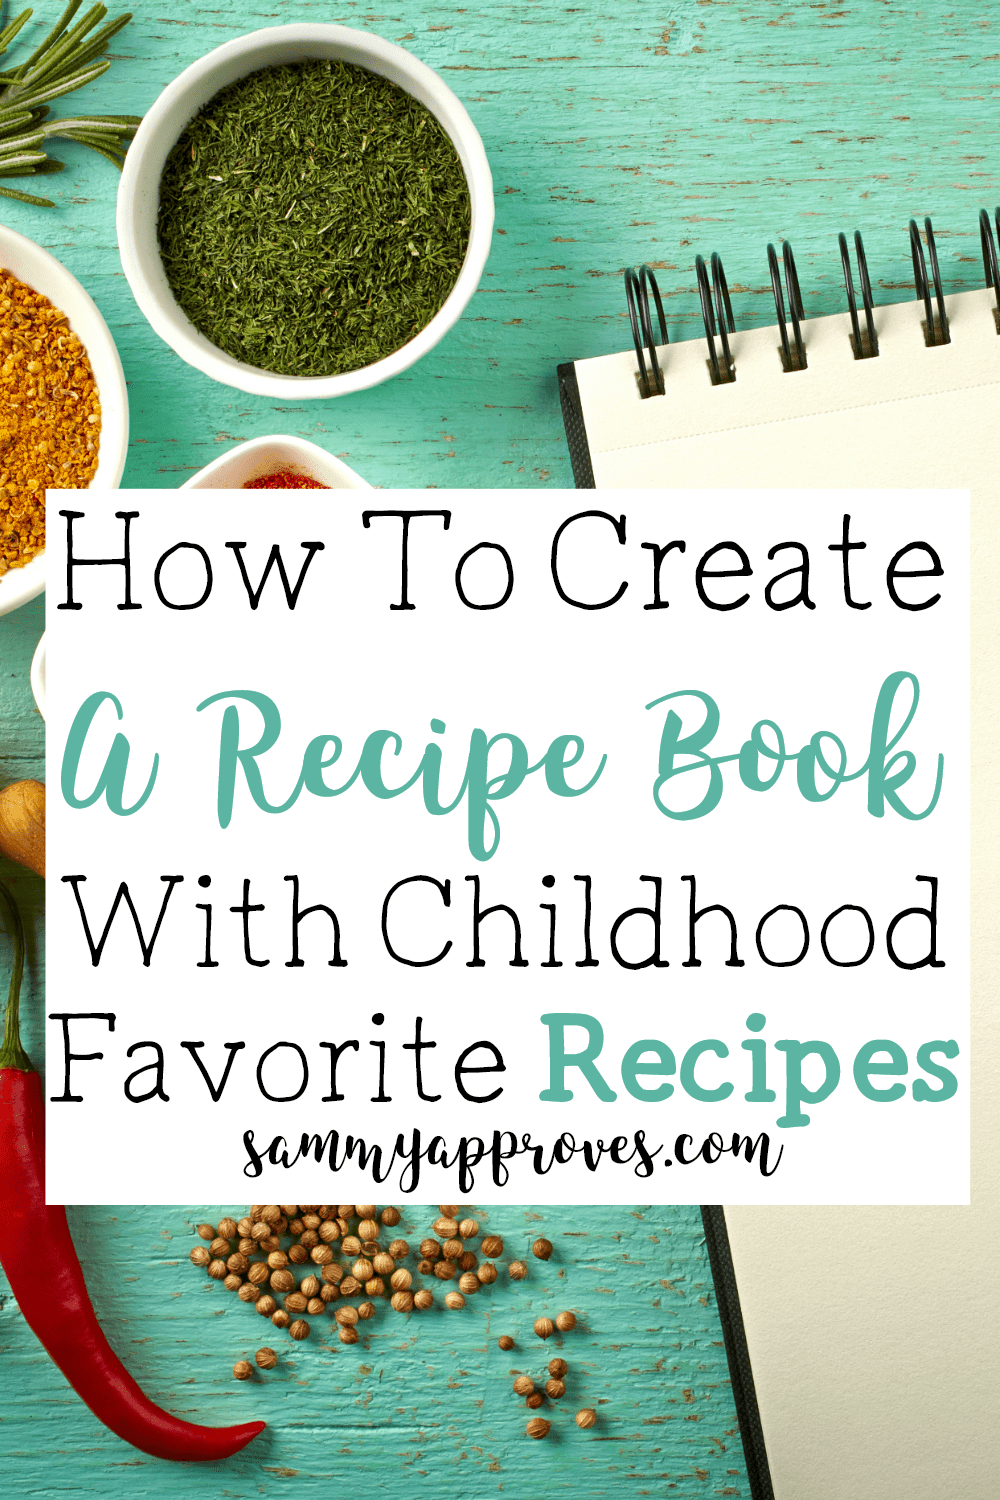 How to Create a Recipe Book with Childhood Favorite Recipes